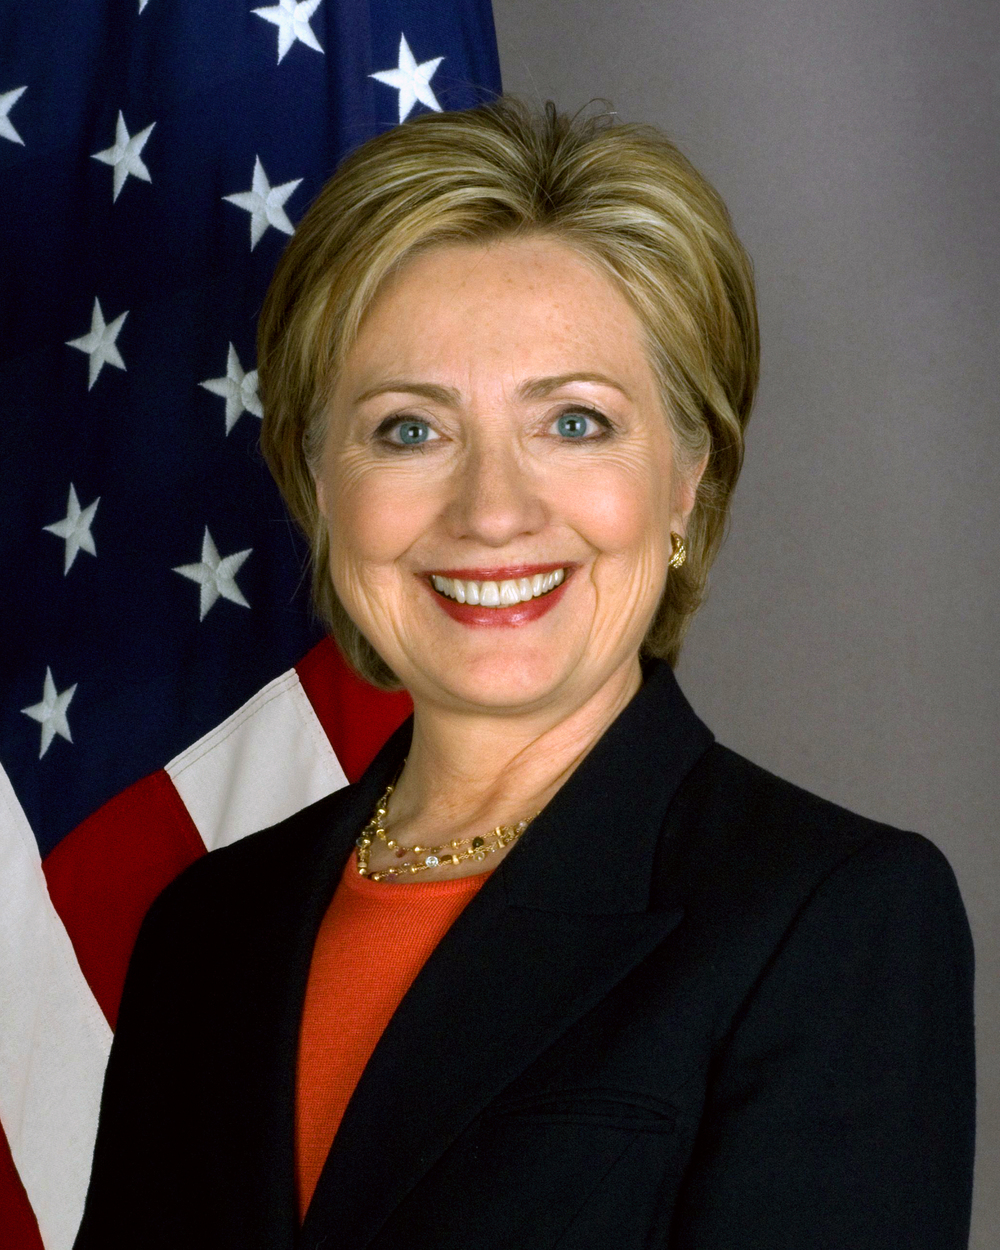 Hillary Clinton. Credit: U.S. Department of State.